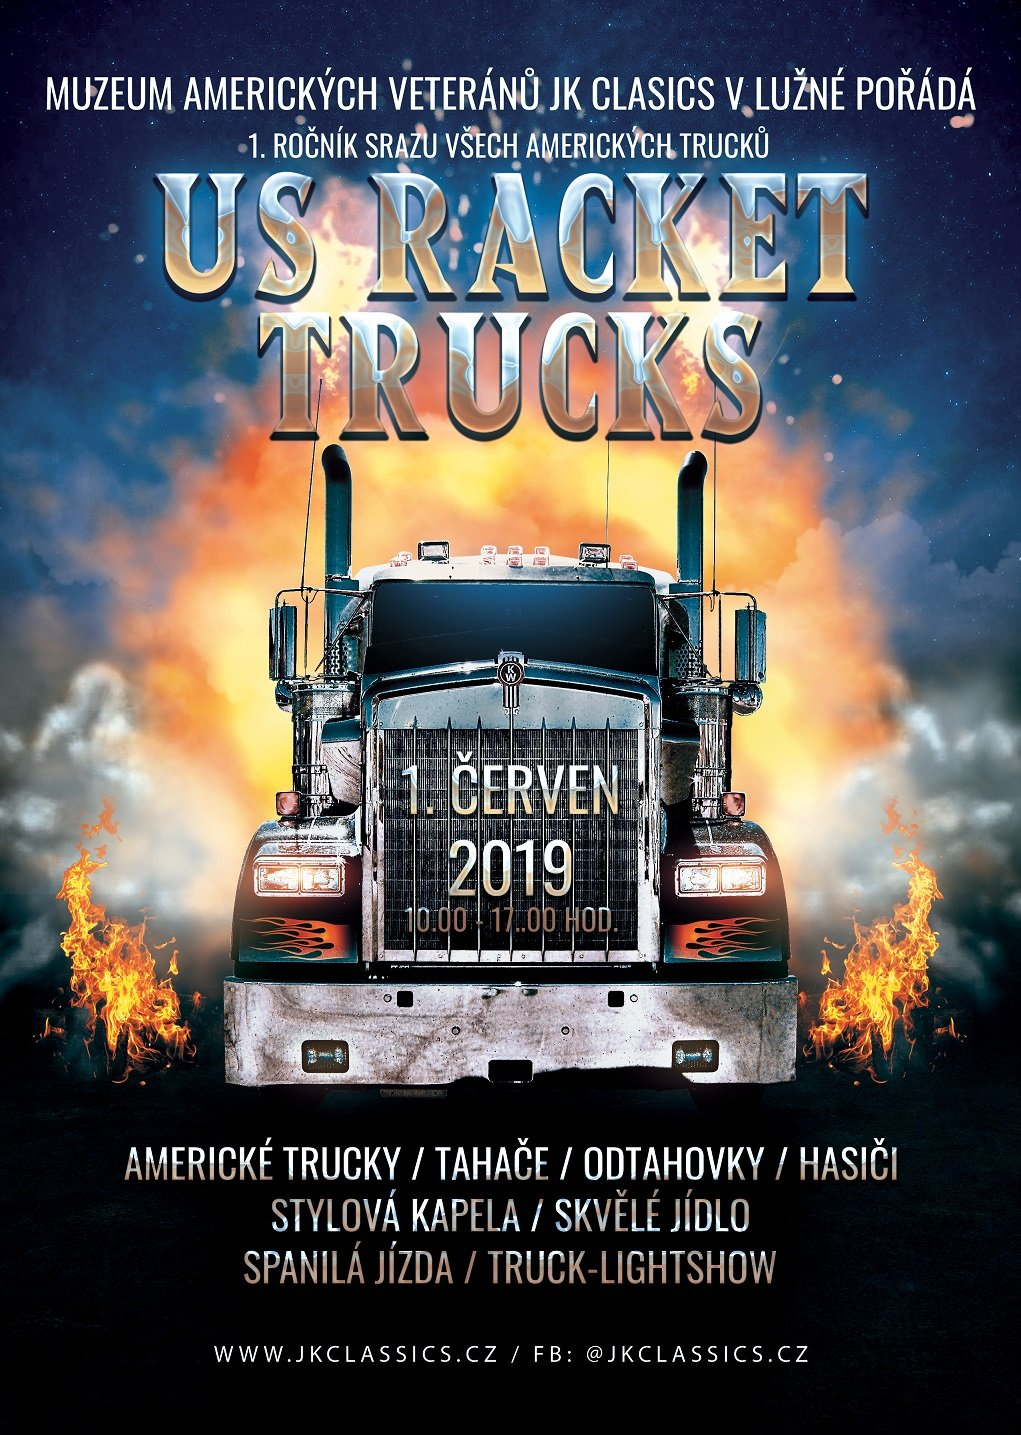 US RACKET TRUCKS 2019_01.jpg